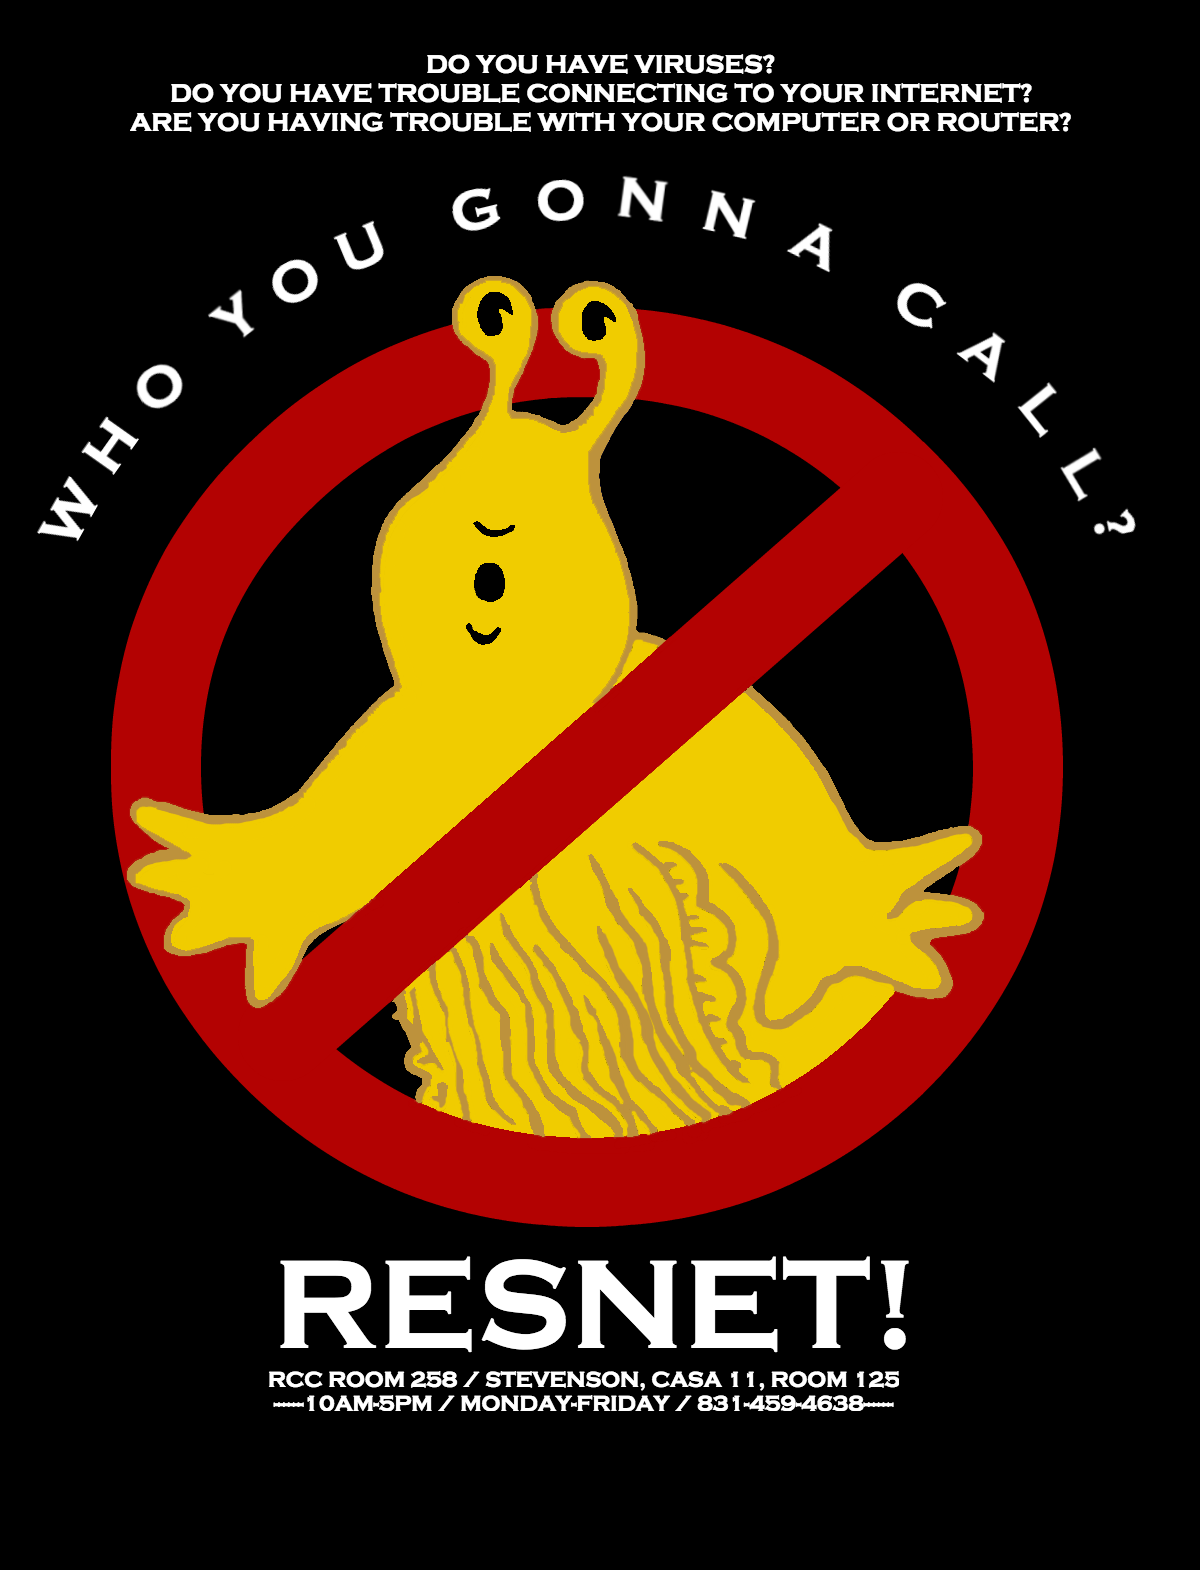 ResNet Ghostbuster T-shirt design